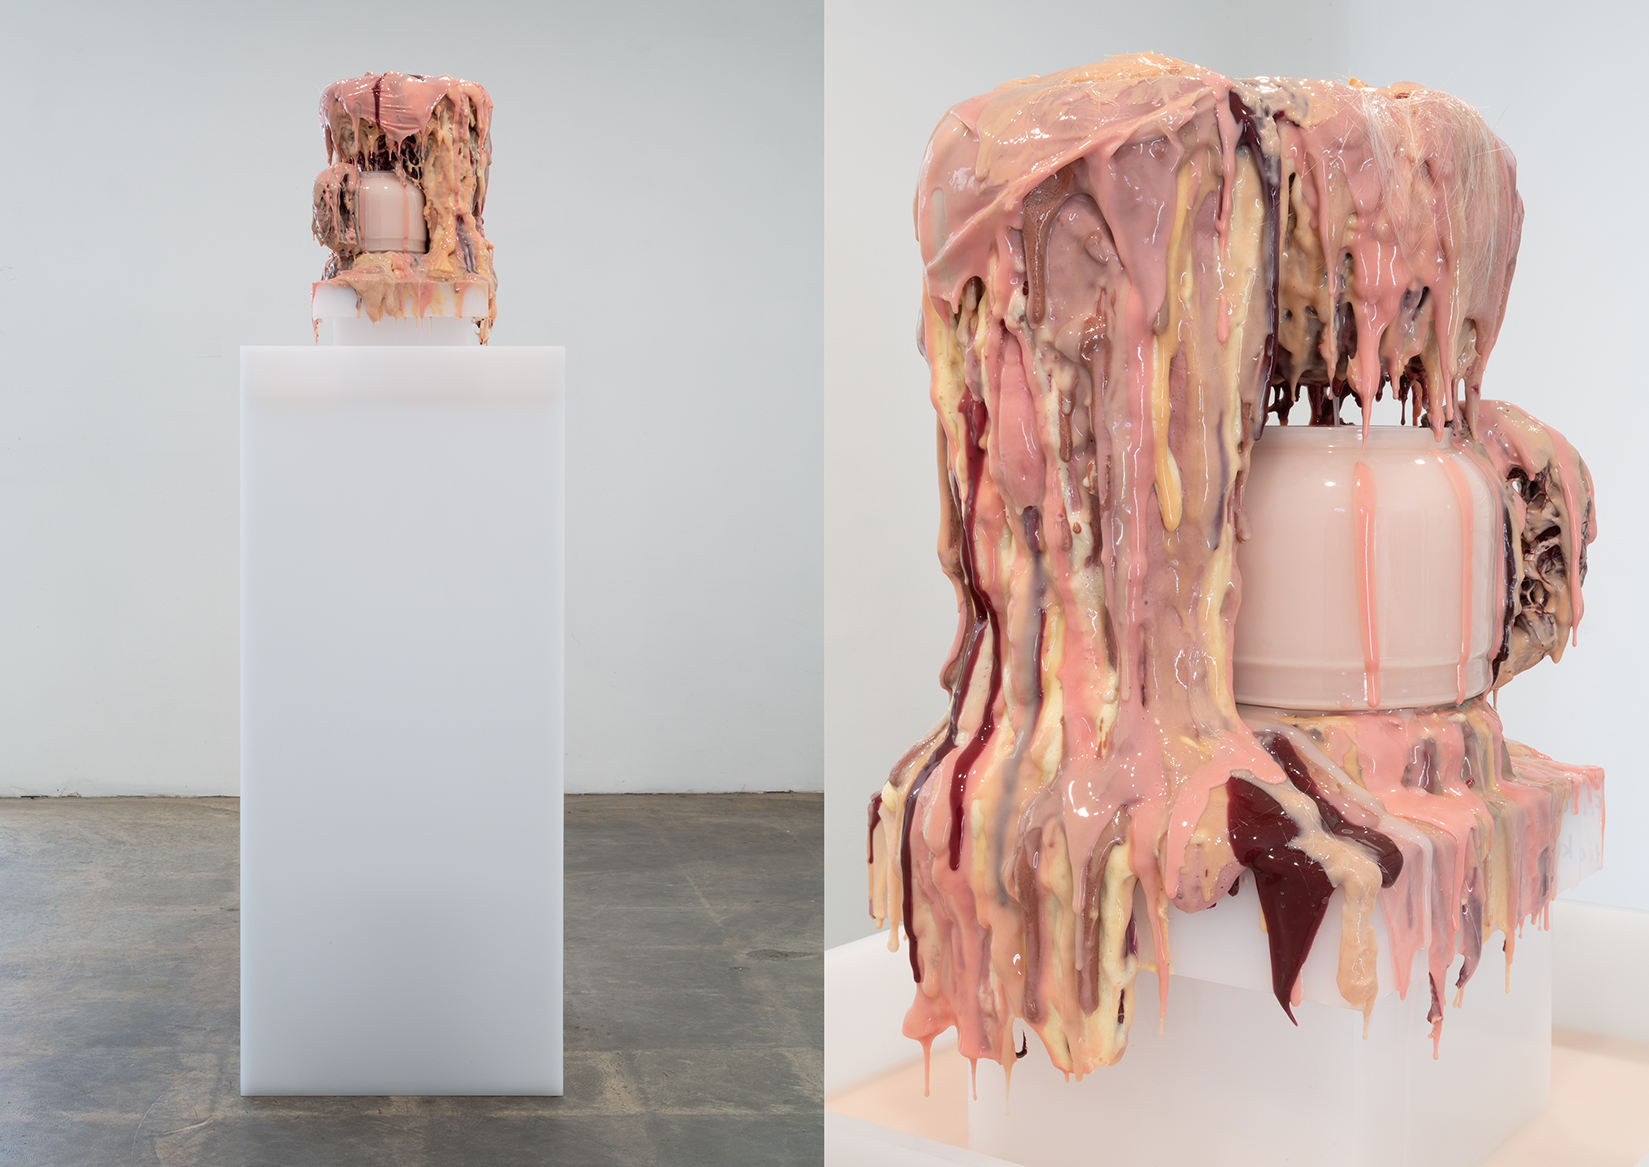 The Consumed Body Purification System (Live Demo)  Acrylic pedestal, pump, plastic reservoir, rubber tubing, coffee machine, urethane foam, silicone rubber, human hair, coffee scented oil, methycel, tempra paint, water; 2018 (Installation view from Rattlesnake Bells In The Desert @ The Box in Los Angeles)